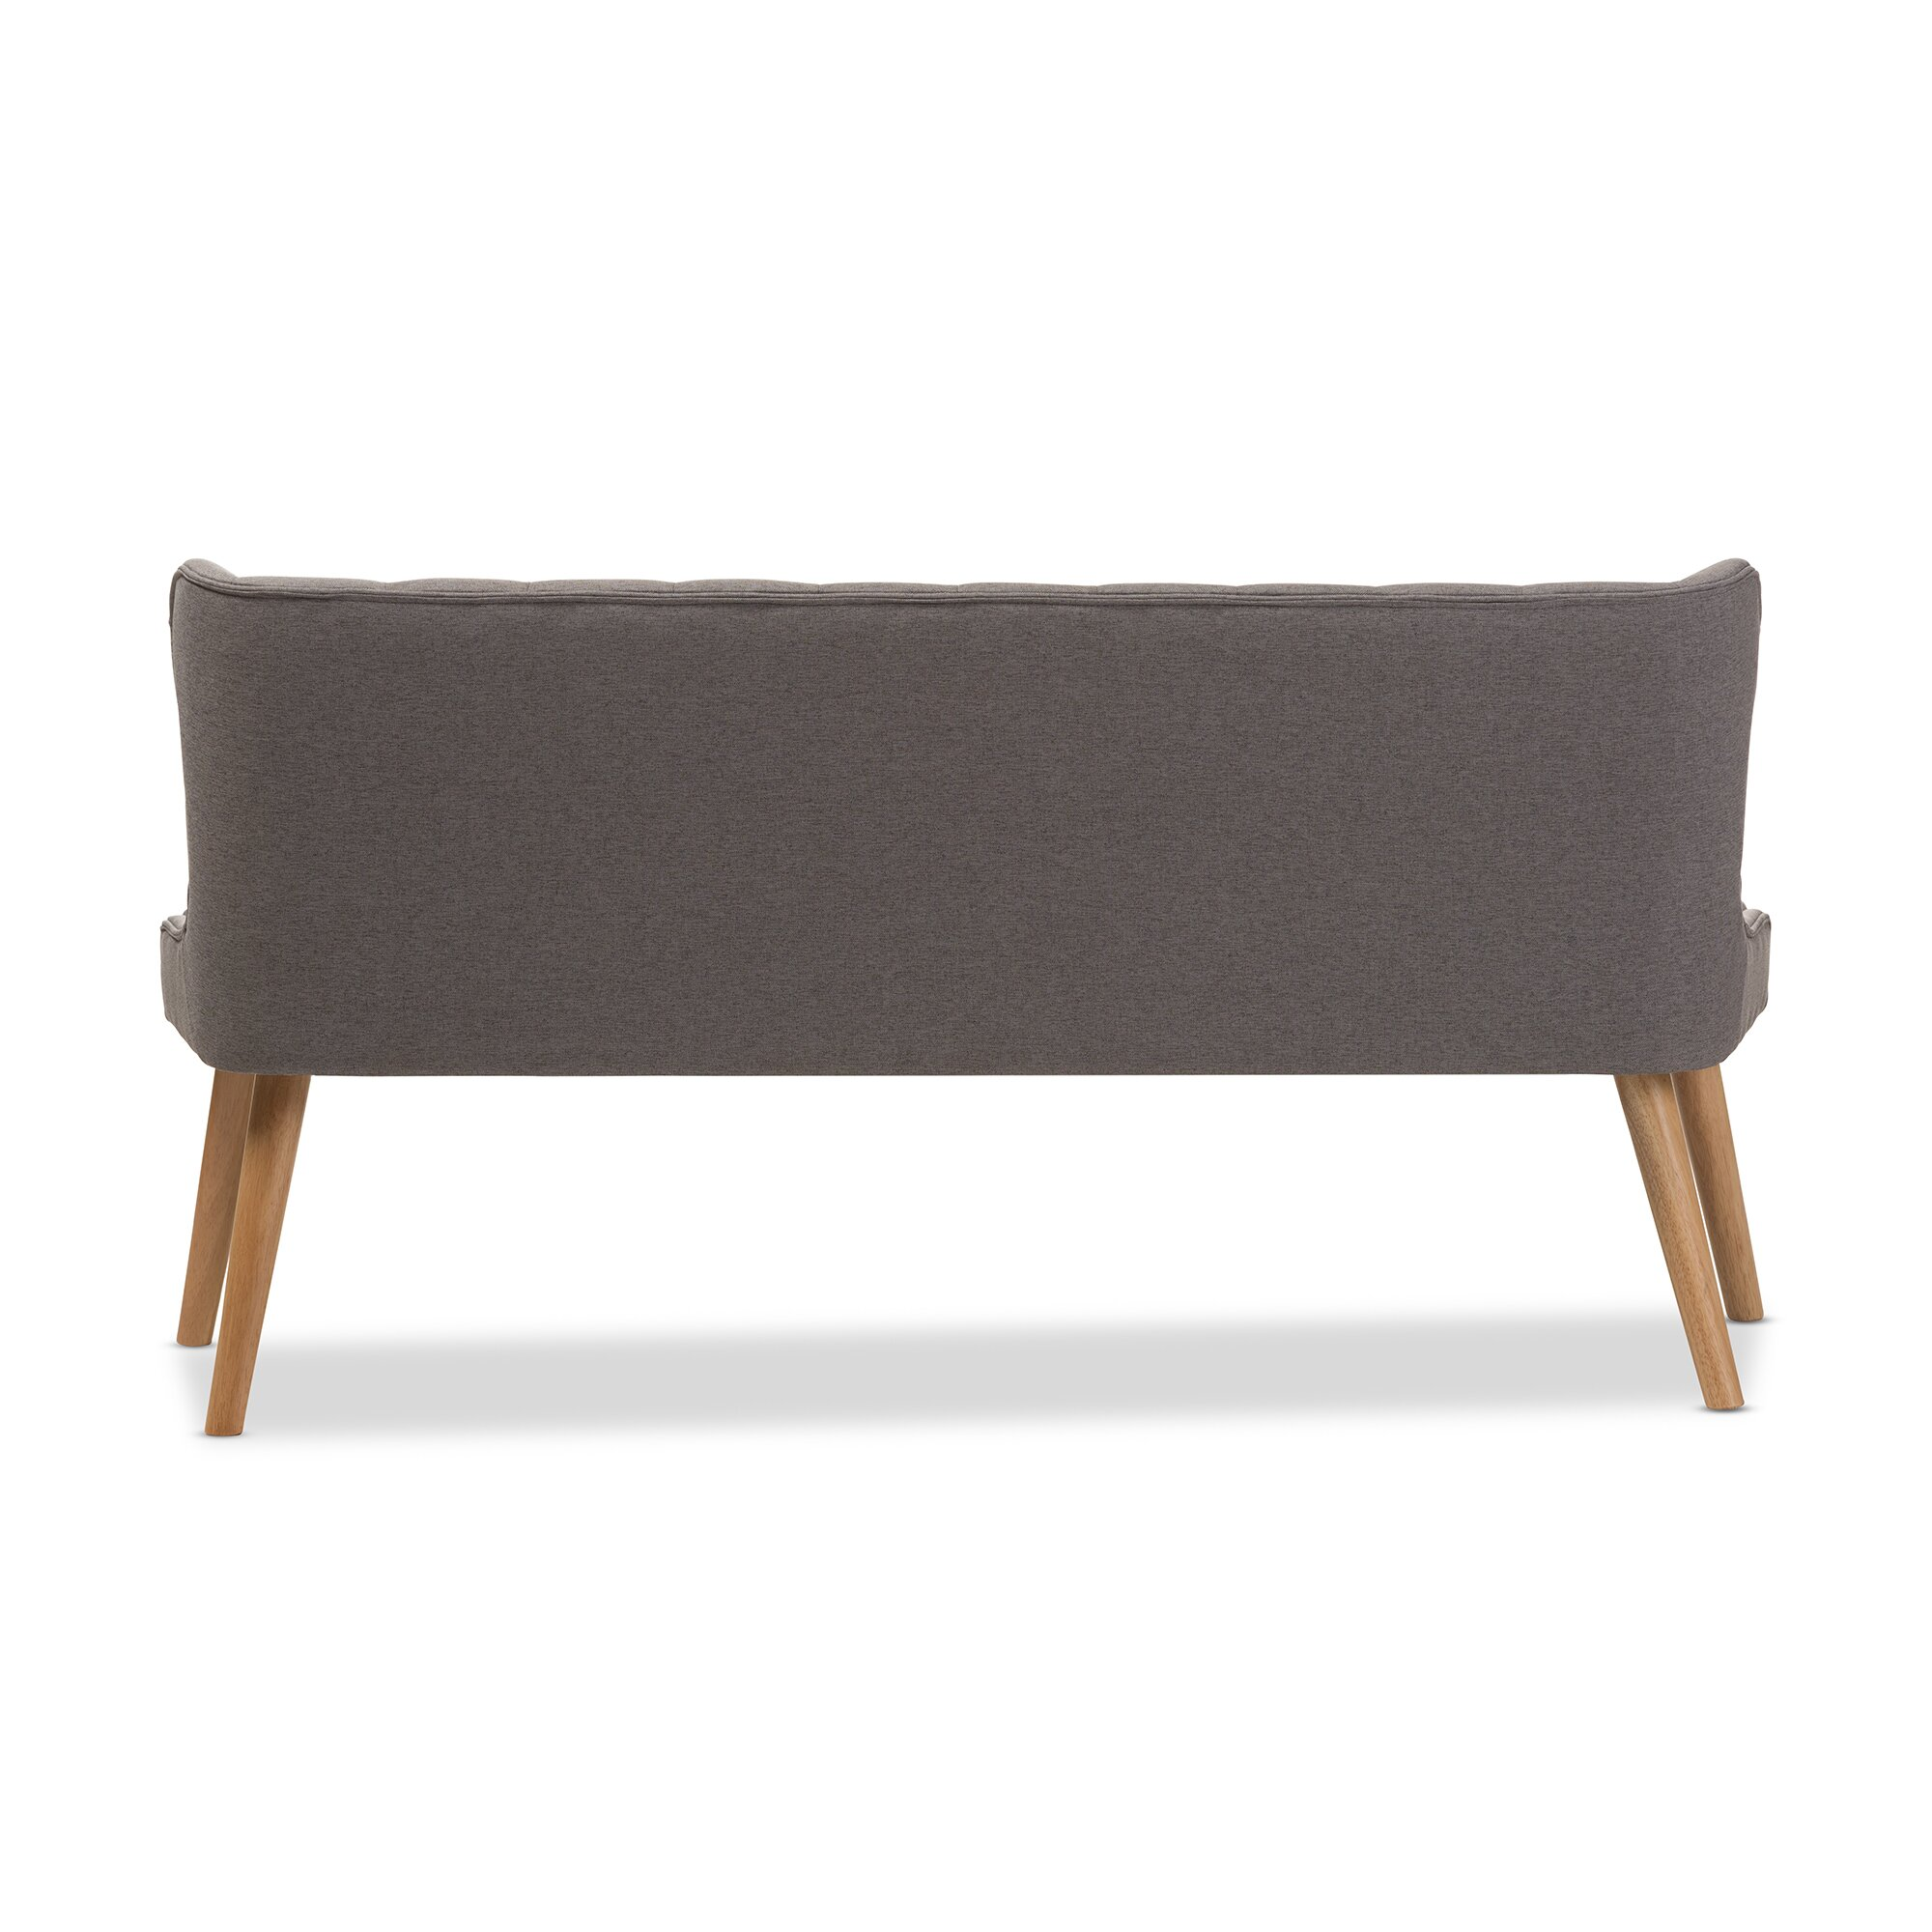 Wholesale interiors alessia upholstered bench reviews Upholstered benches